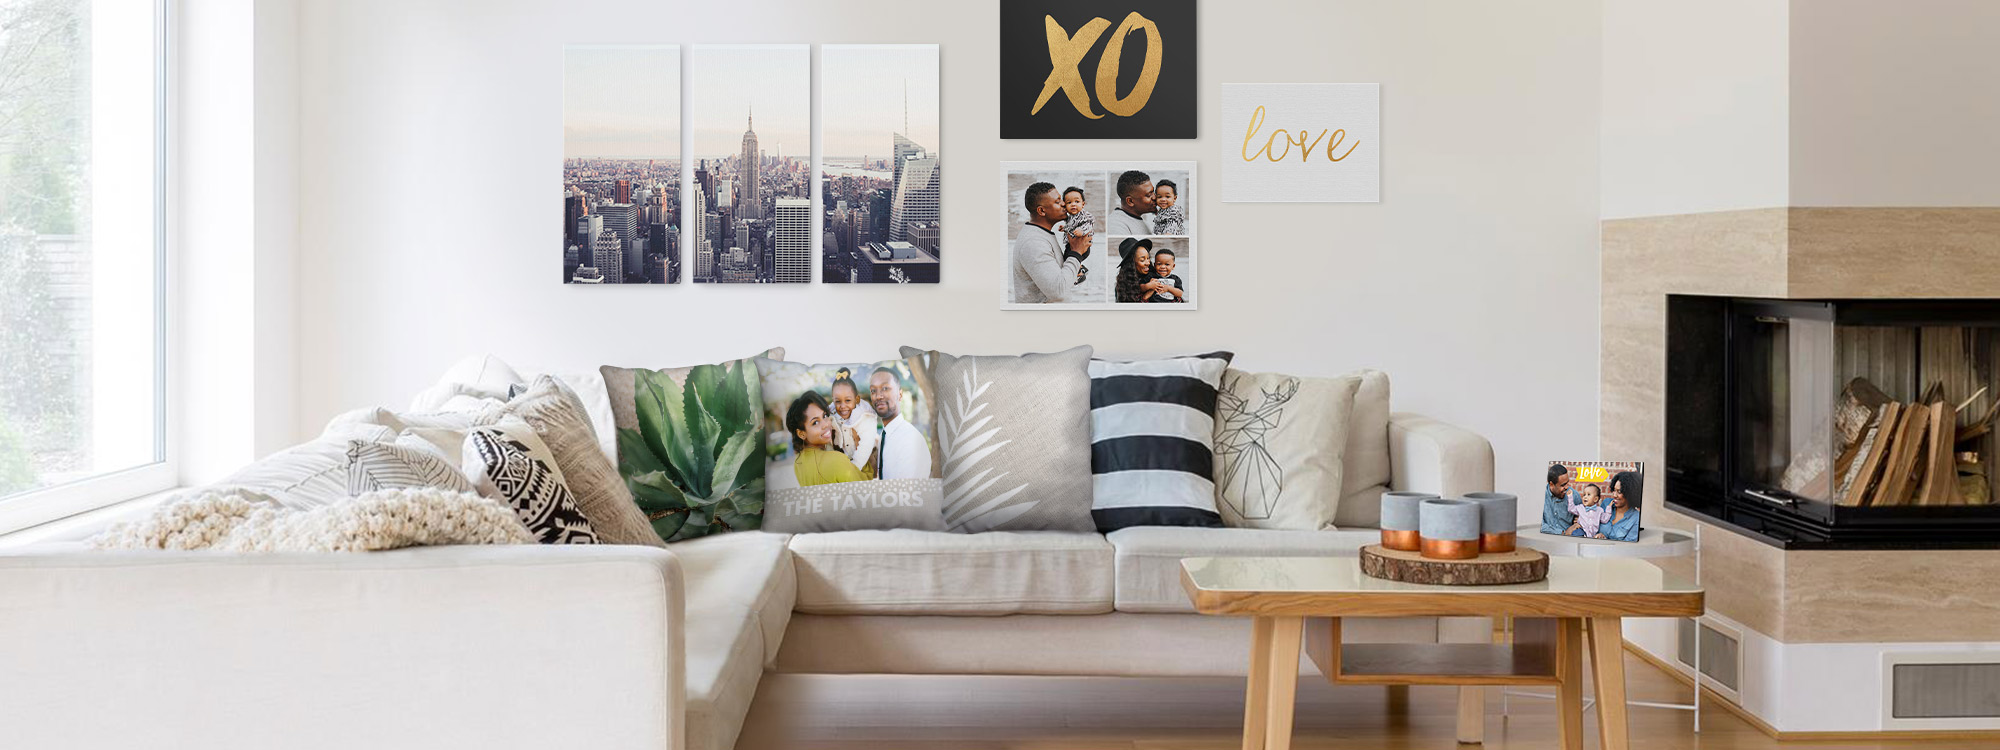 Home Decor Ideas Beautifully Display Your Photos Throughout The House